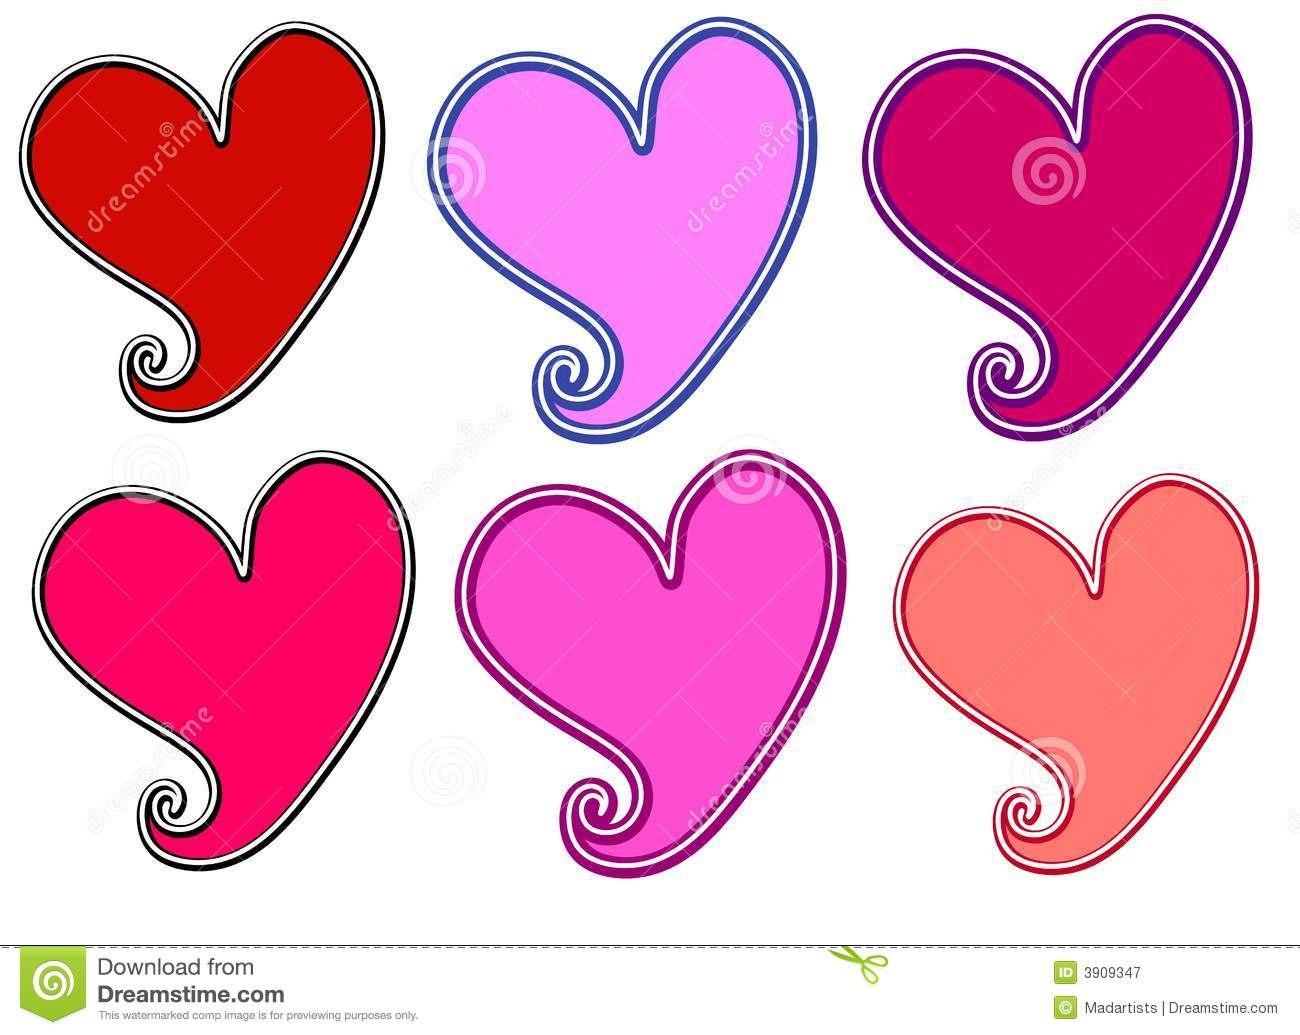 Hearts Valentines Clipart ... Resolution-Hearts Valentines Clipart ... Resolution 1300x1035 .-17